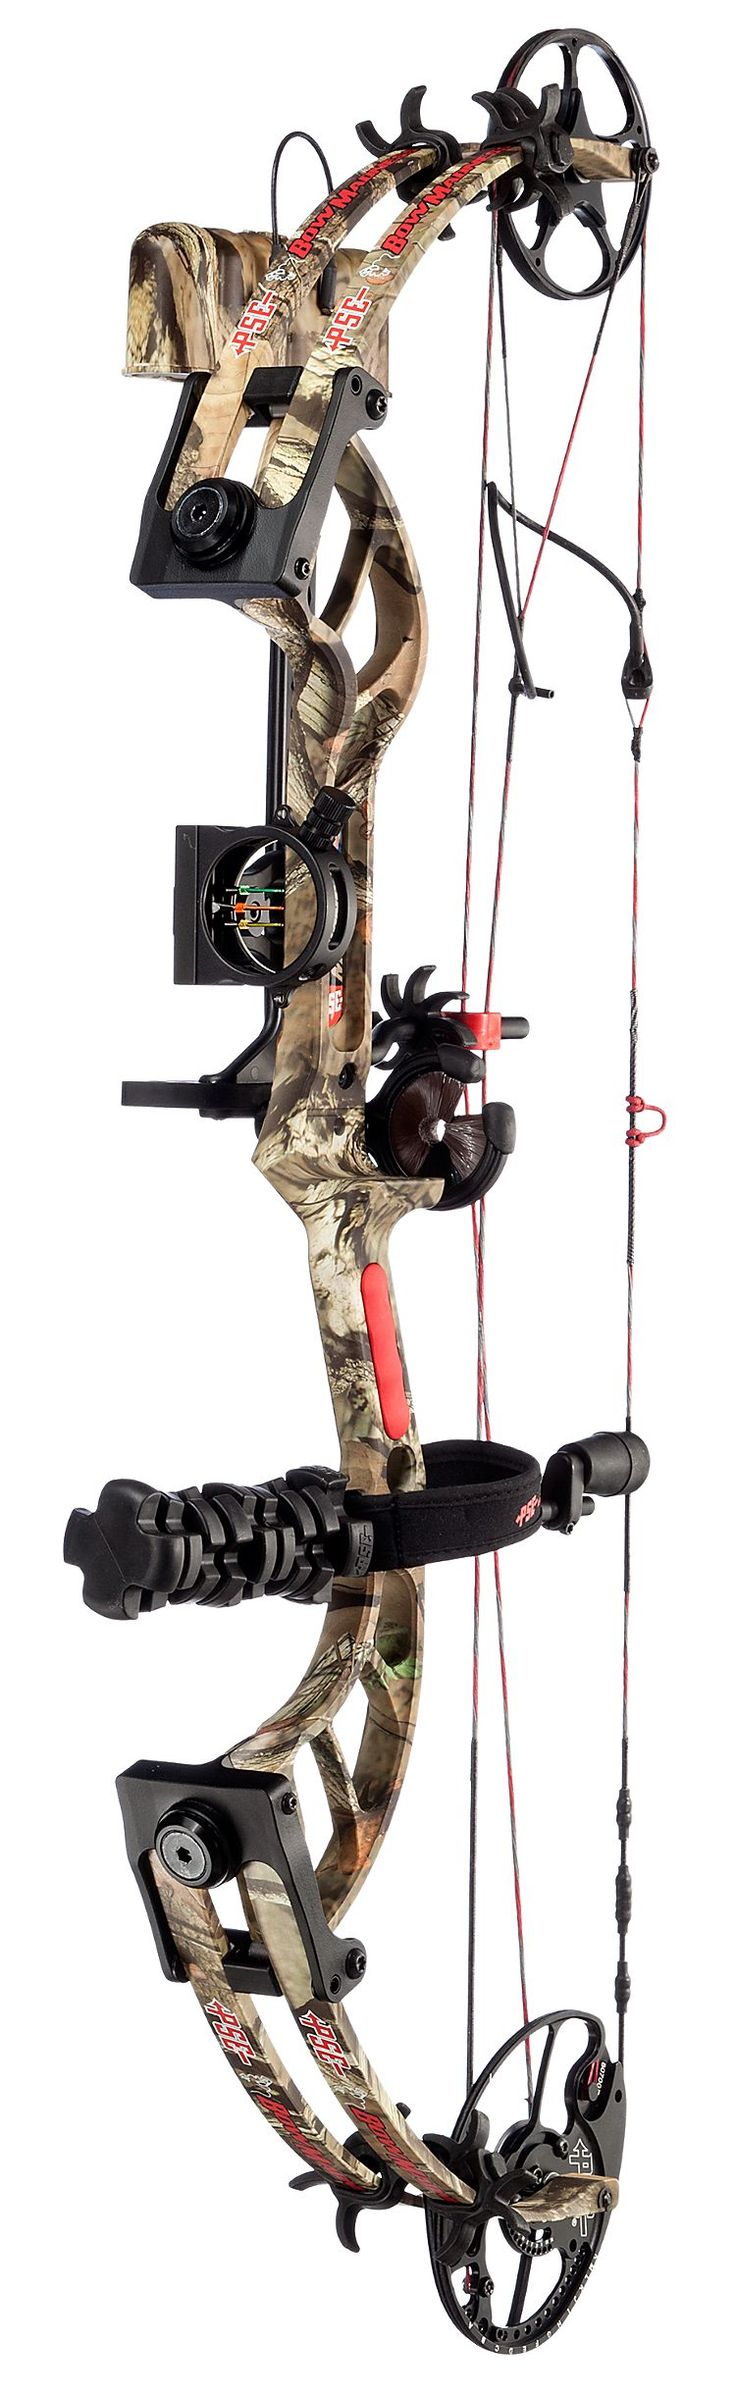 228 Best Bowhunting And Archery Images On Pinterest Compound Bows